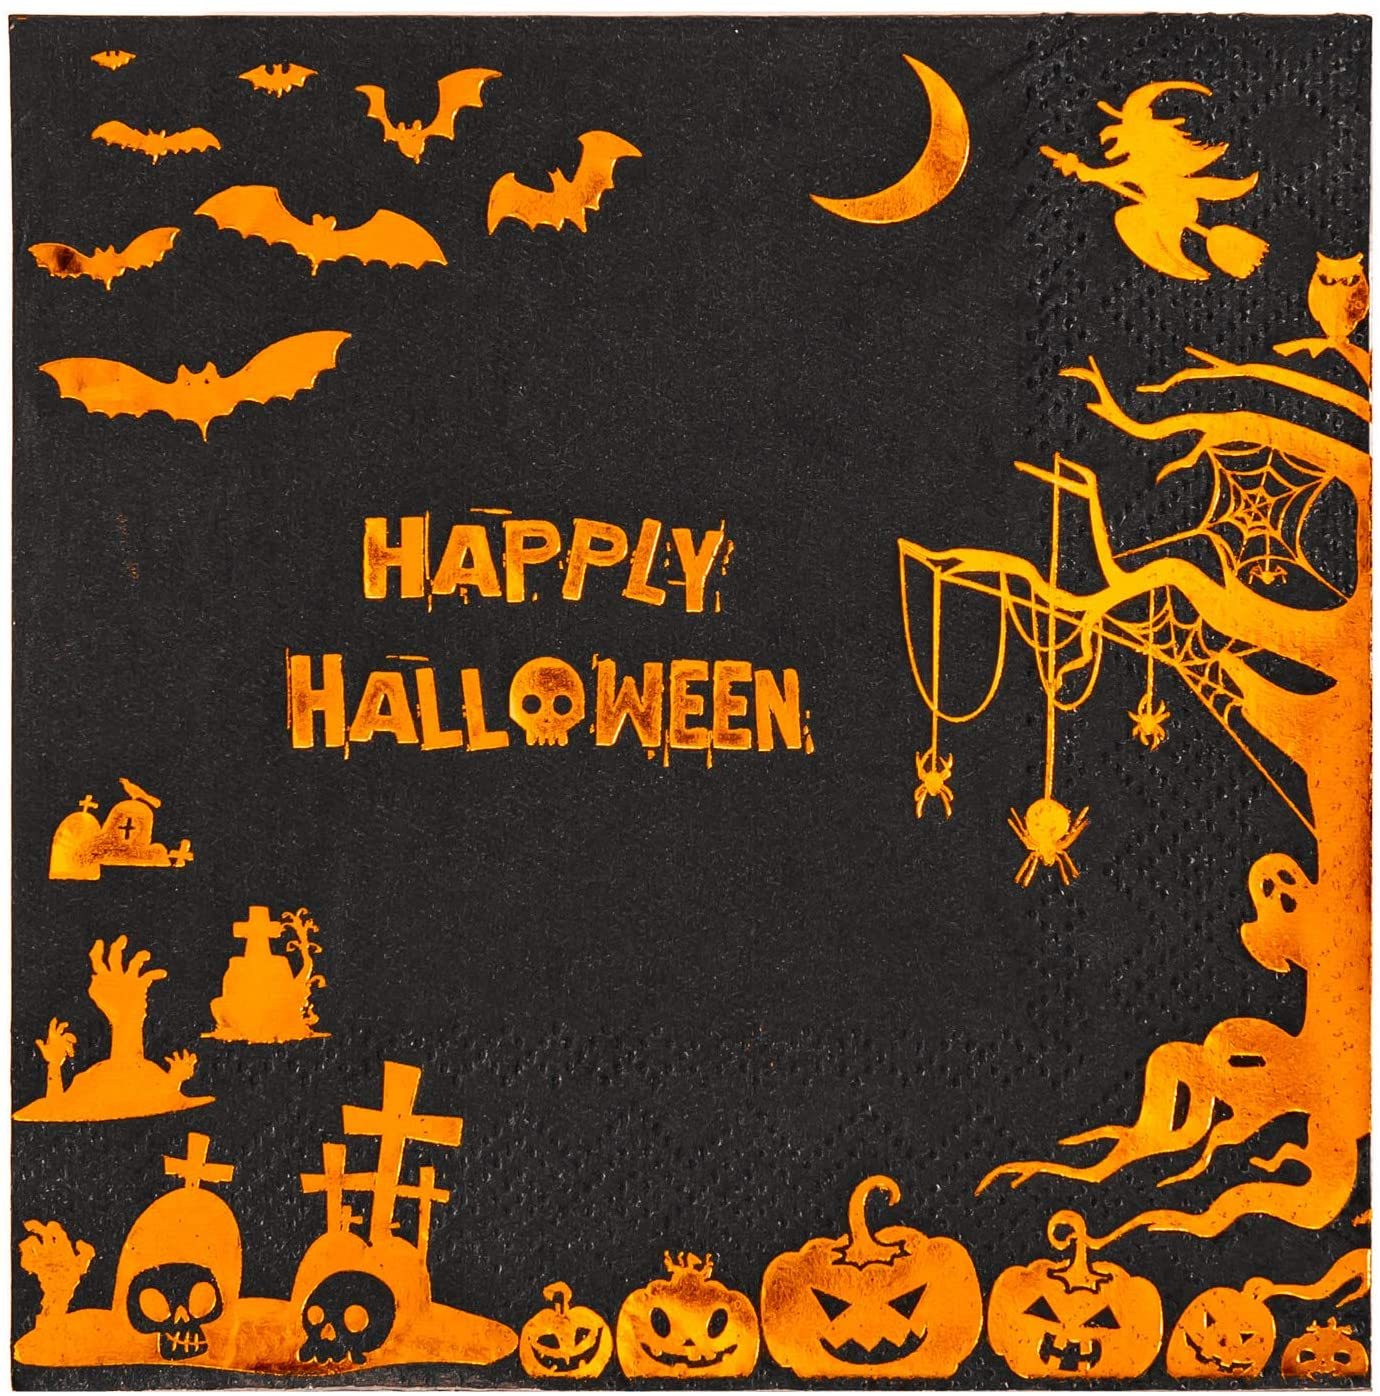 Crisky Happy Halloween Disposable Cocktail Napkins for Halloween Dinner Party Decorations, Orange Gold Foil, 50 Pcs, 3-Ply